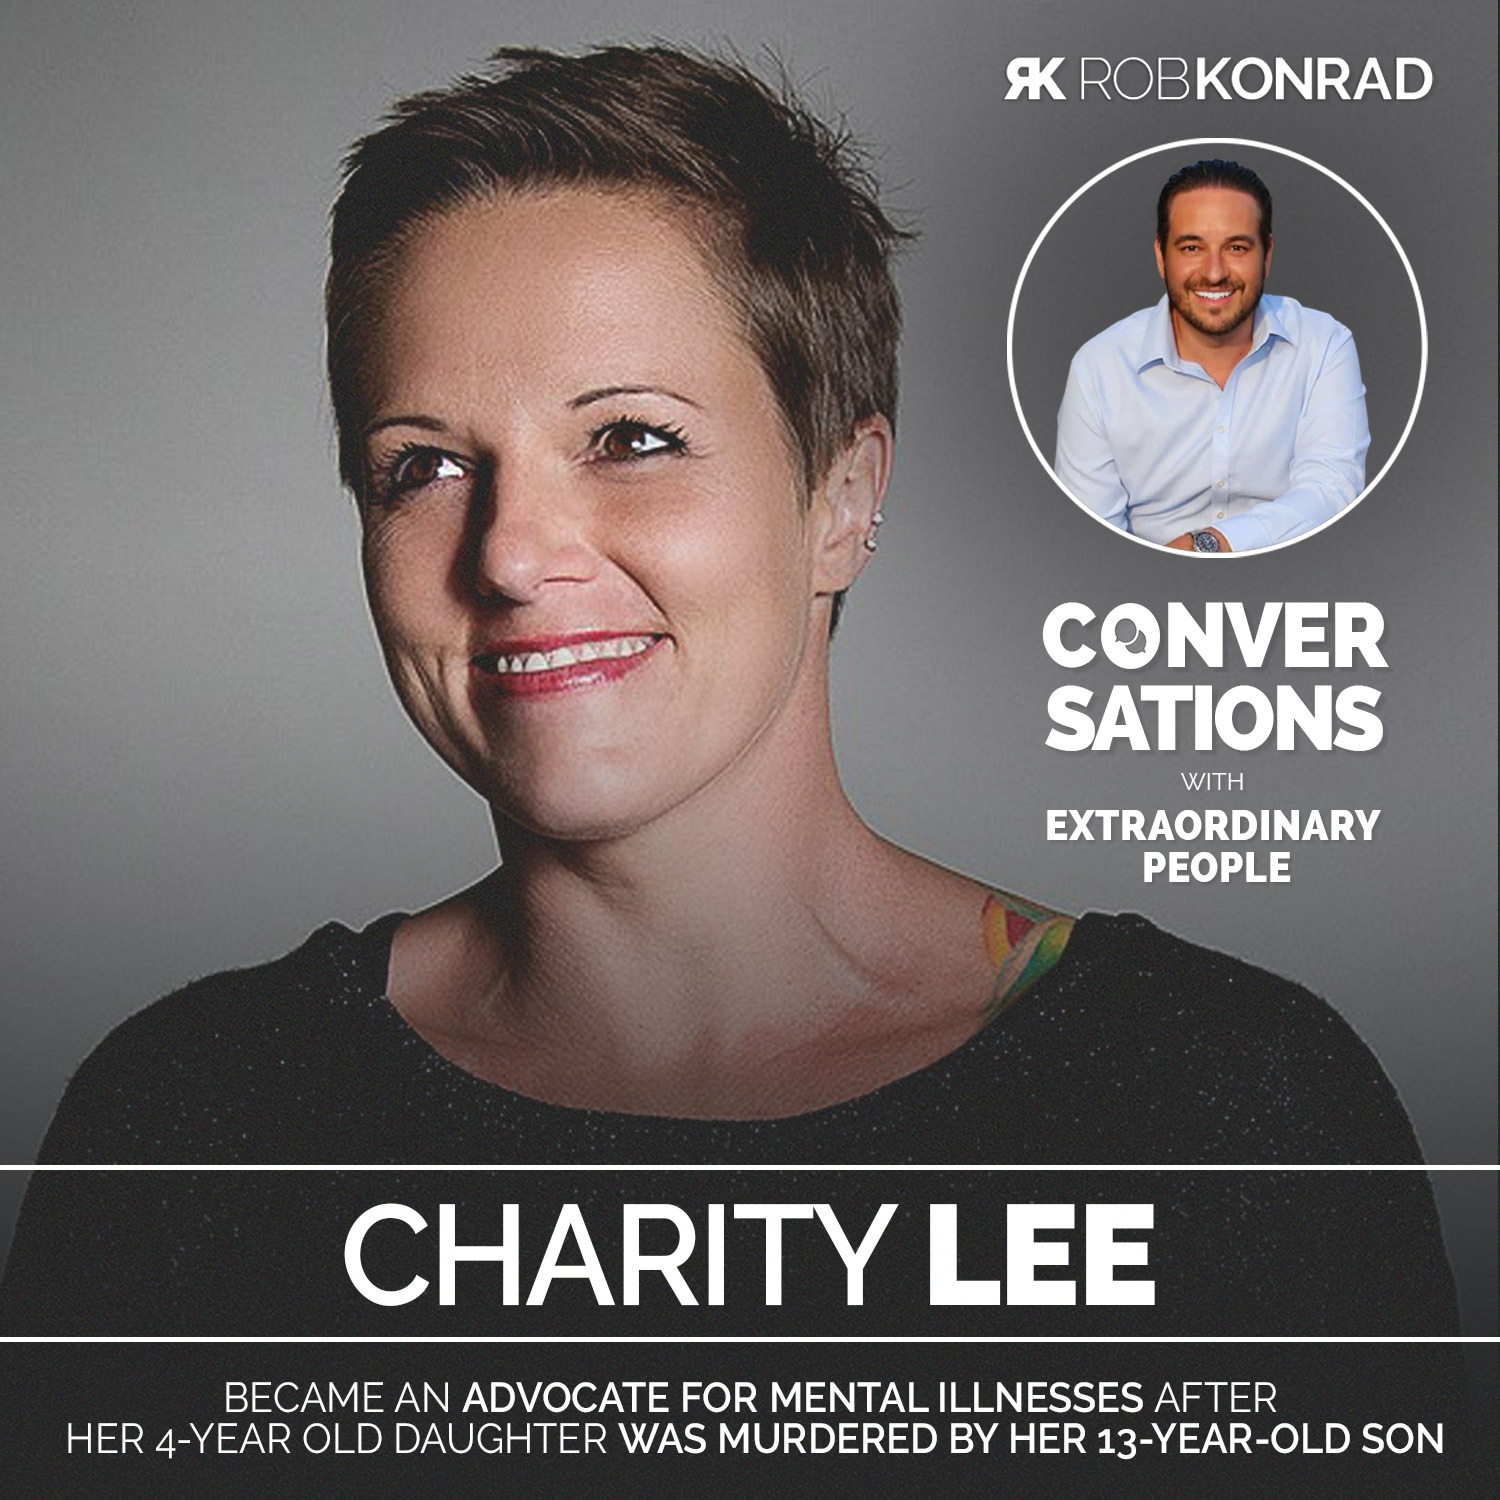 013. The Day My Son Killed My Daughter: Charity Lee